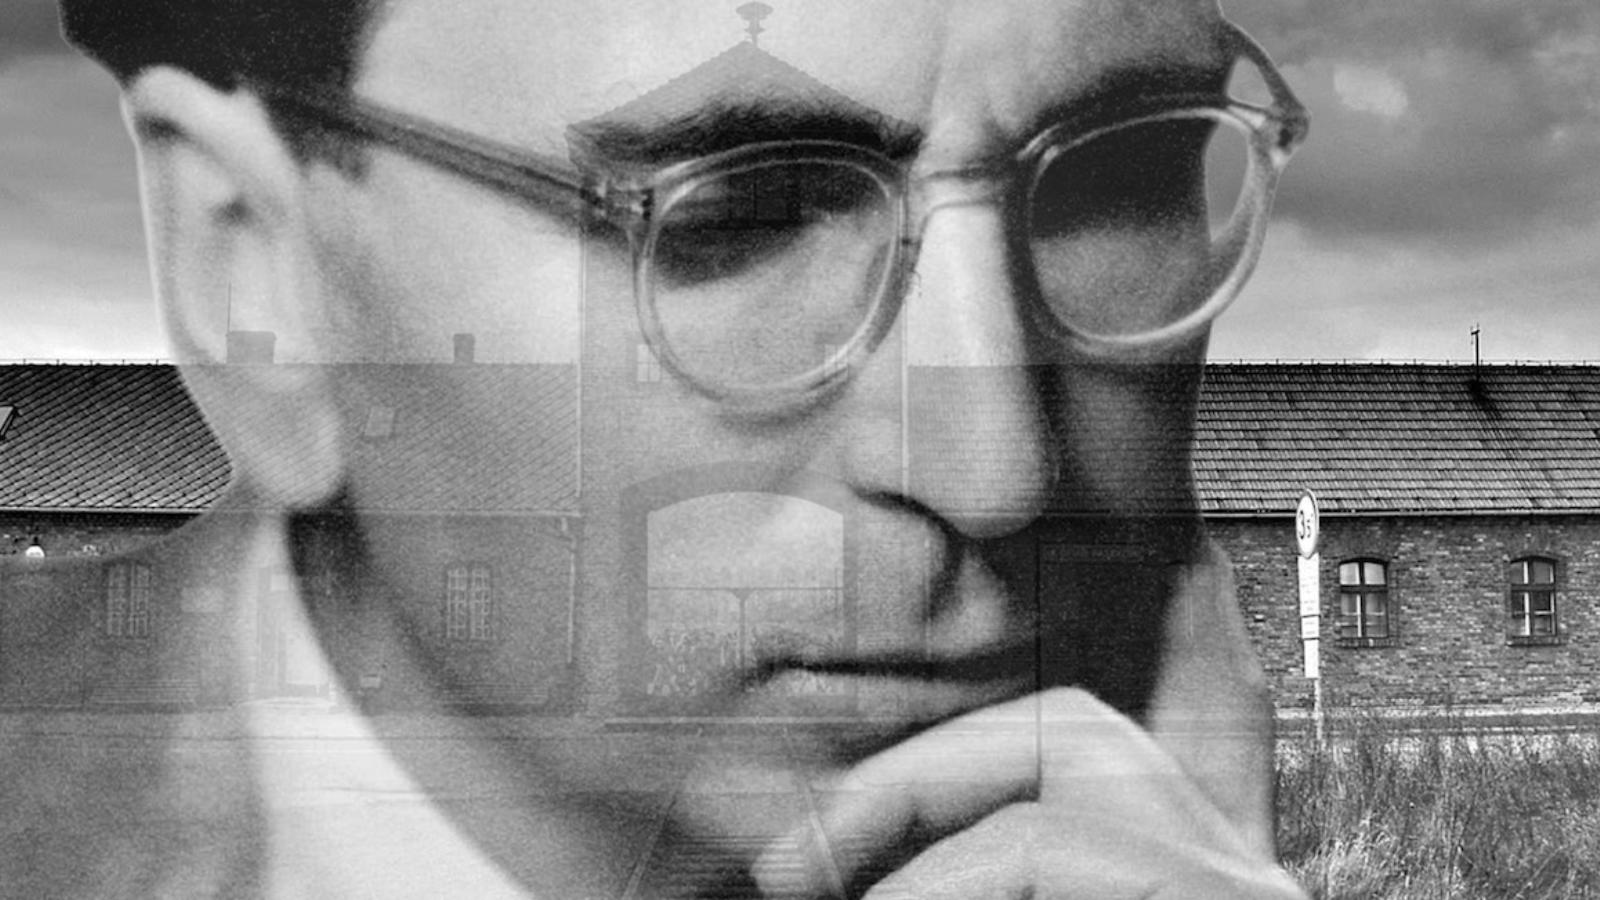 A photo of Viktor Frankl is superimposed onto another photo of Auschwitz Concentration Camp.